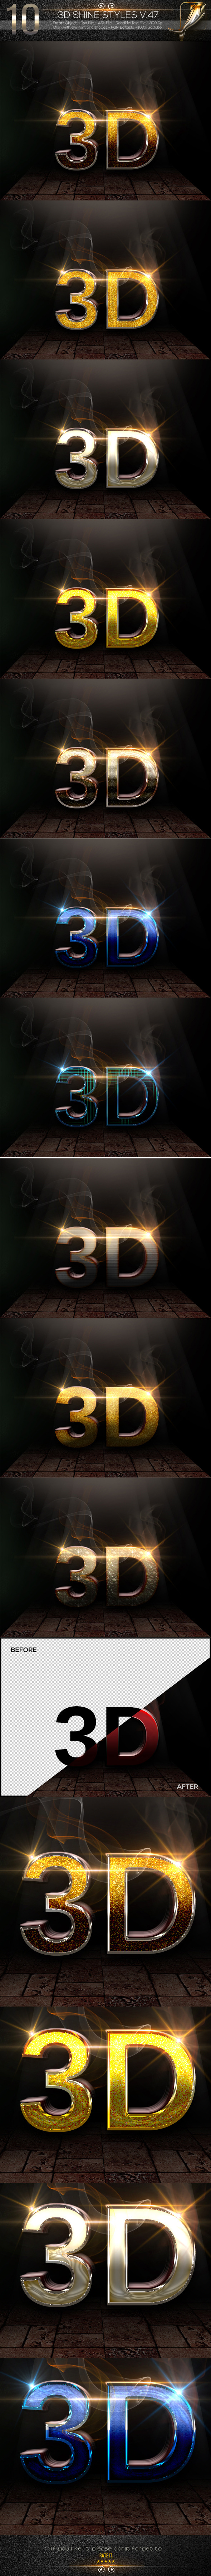 10 3D Text Styles V.47 - Text Effects Styles